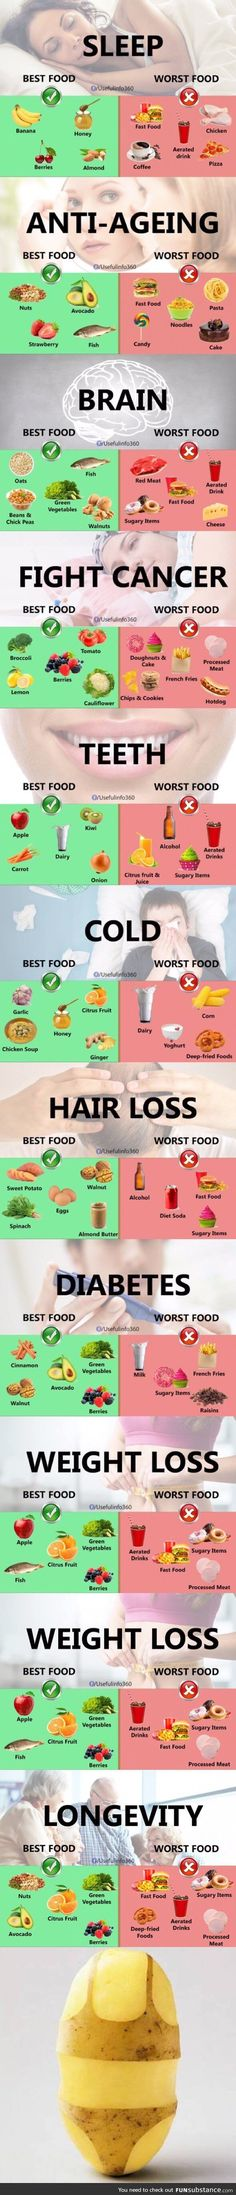 Best and worst FOOD....NOT completely accurate, asmeat and animal dairy are NEVER healthy for you (the dangers DO out weigh the manipulated view of any benefits, so skip those, go VEGAN and reap the rewards of better health and a better life! http://healthyquickly.com/27-proven-tummy-tightening-foods/